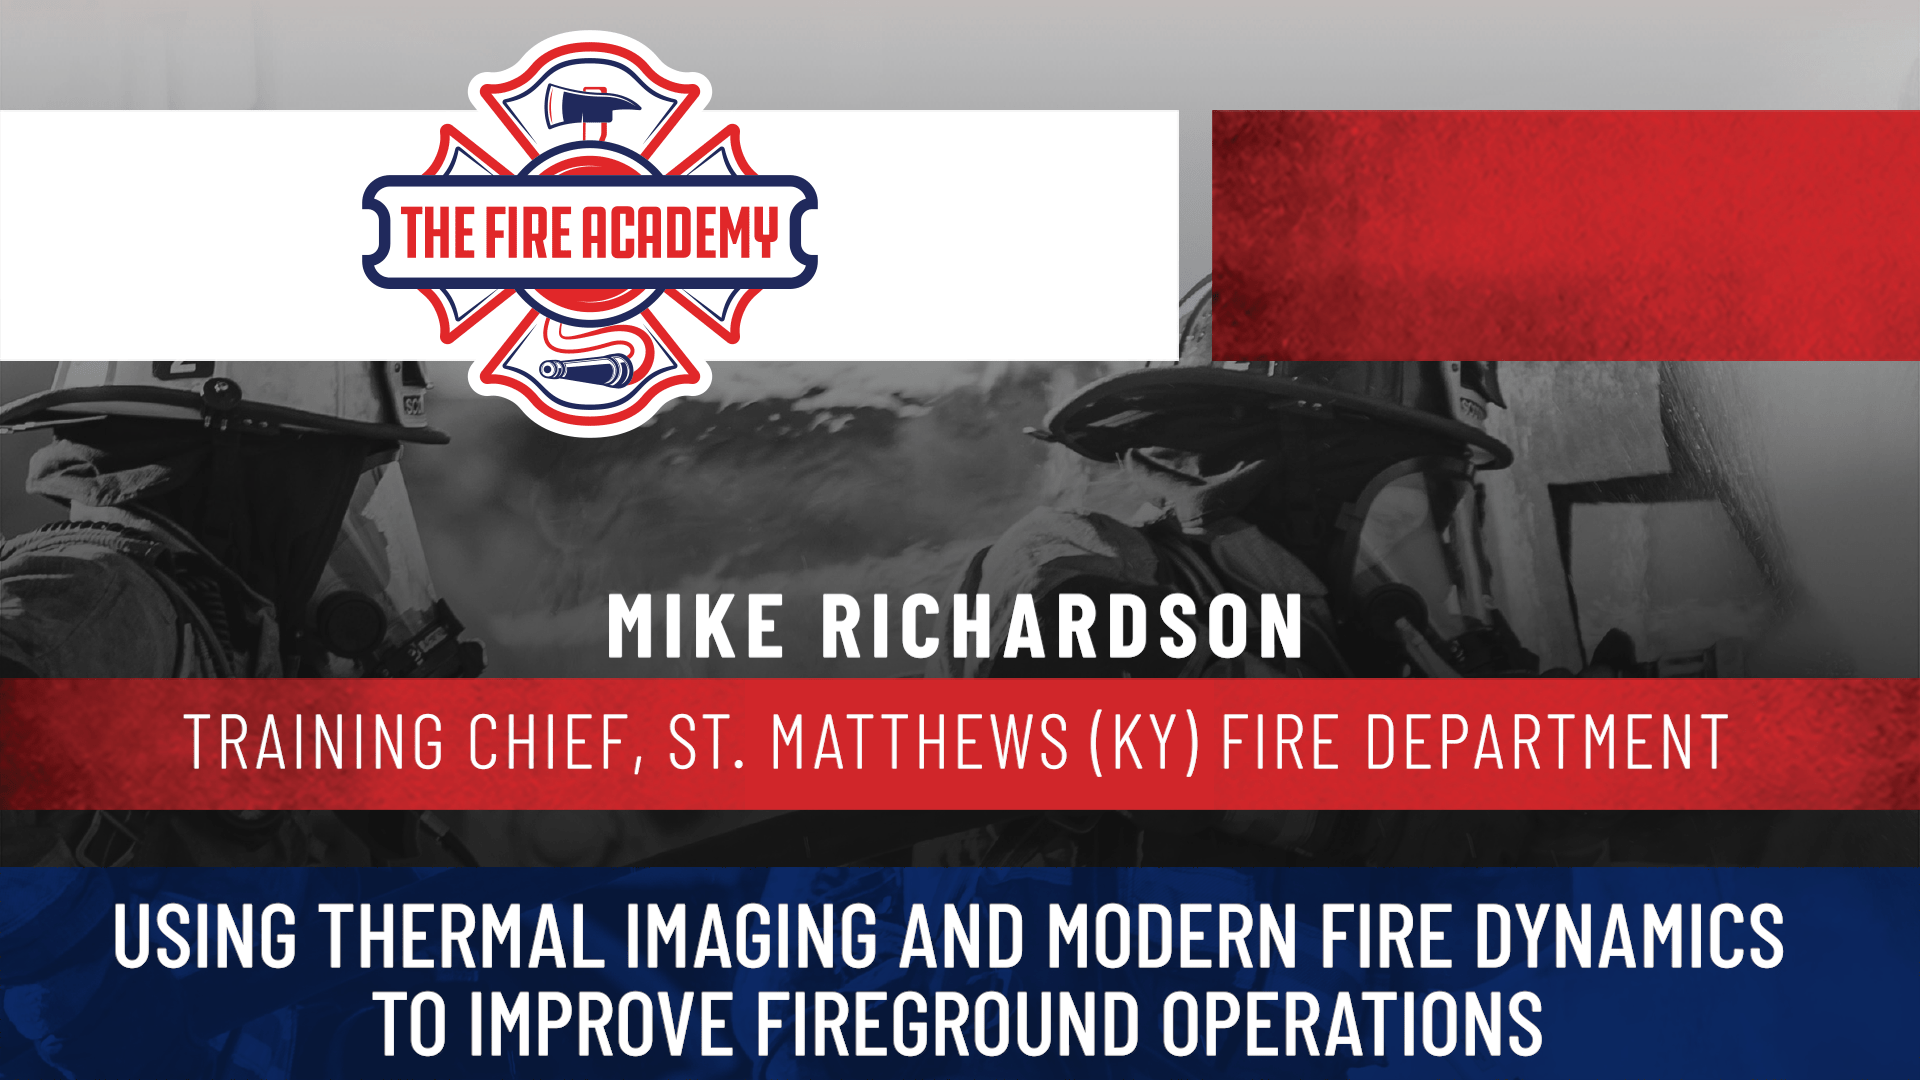 Using Thermal Imaging and Modern Fire Dynamics to Improve Fireground Operations